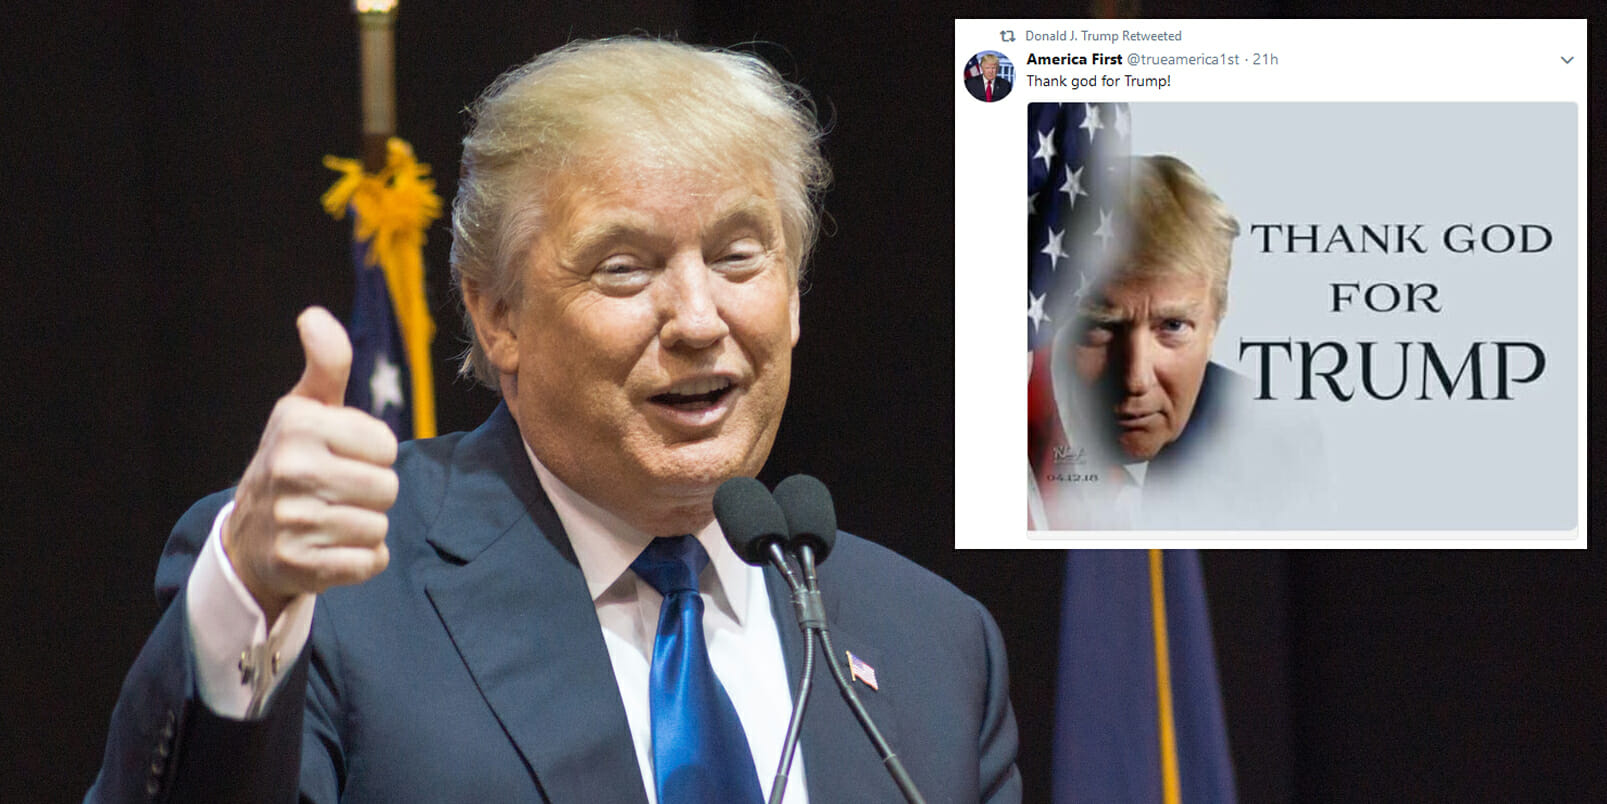 Trump Goes On A Retweeting Spree Posts A Bunch Of Pro